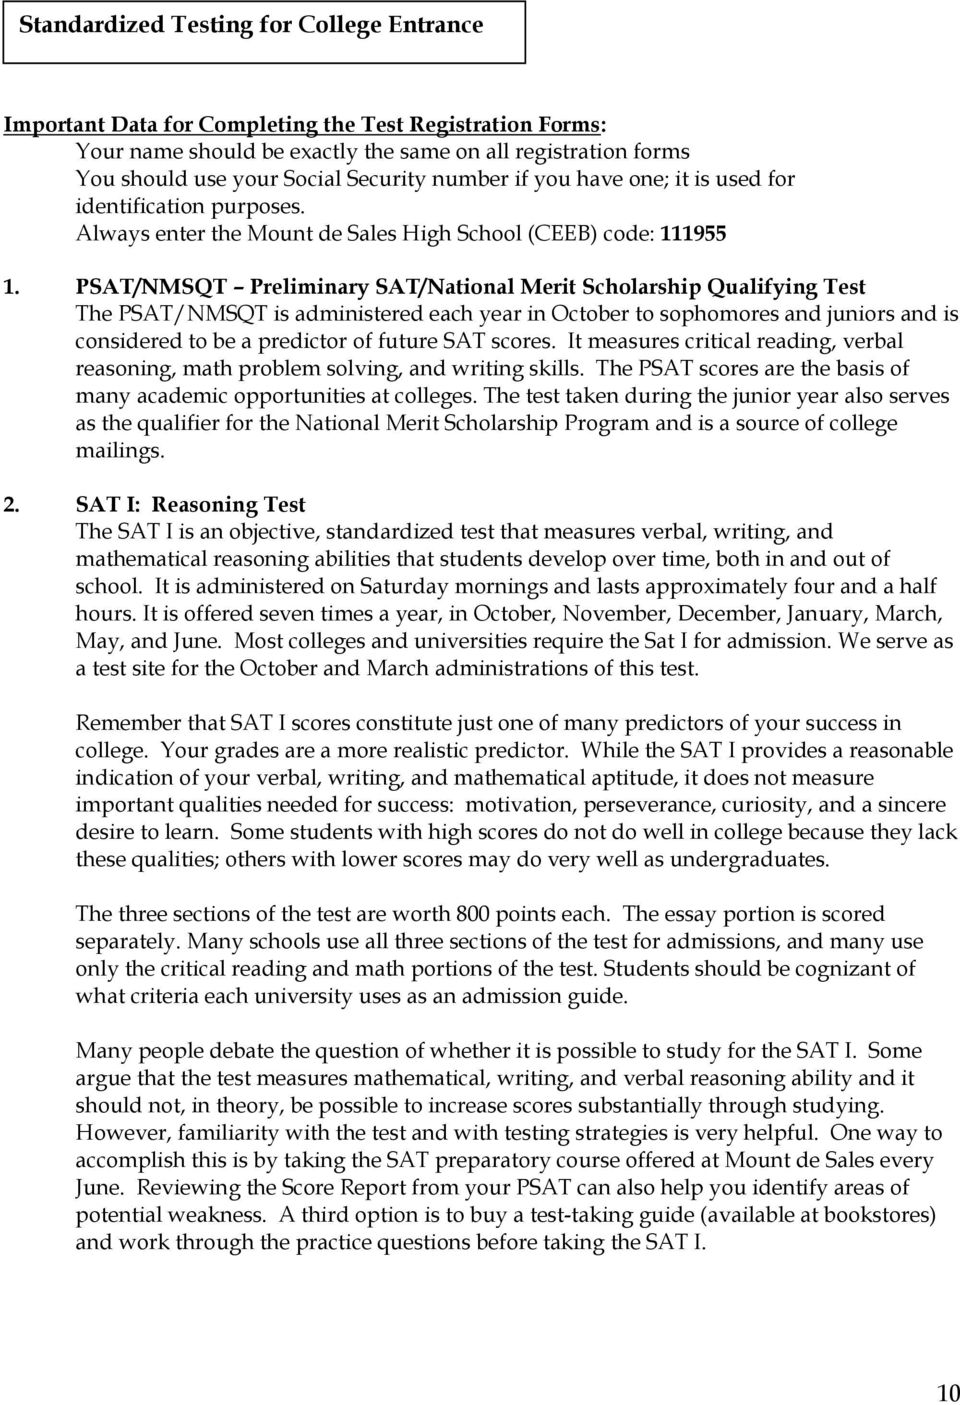 PSAT/NMSQT Preliminary SAT/National Merit Scholarship Qualifying Test The PSAT/NMSQT is administered each year in October to sophomores and juniors and is considered to be a predictor of future SAT